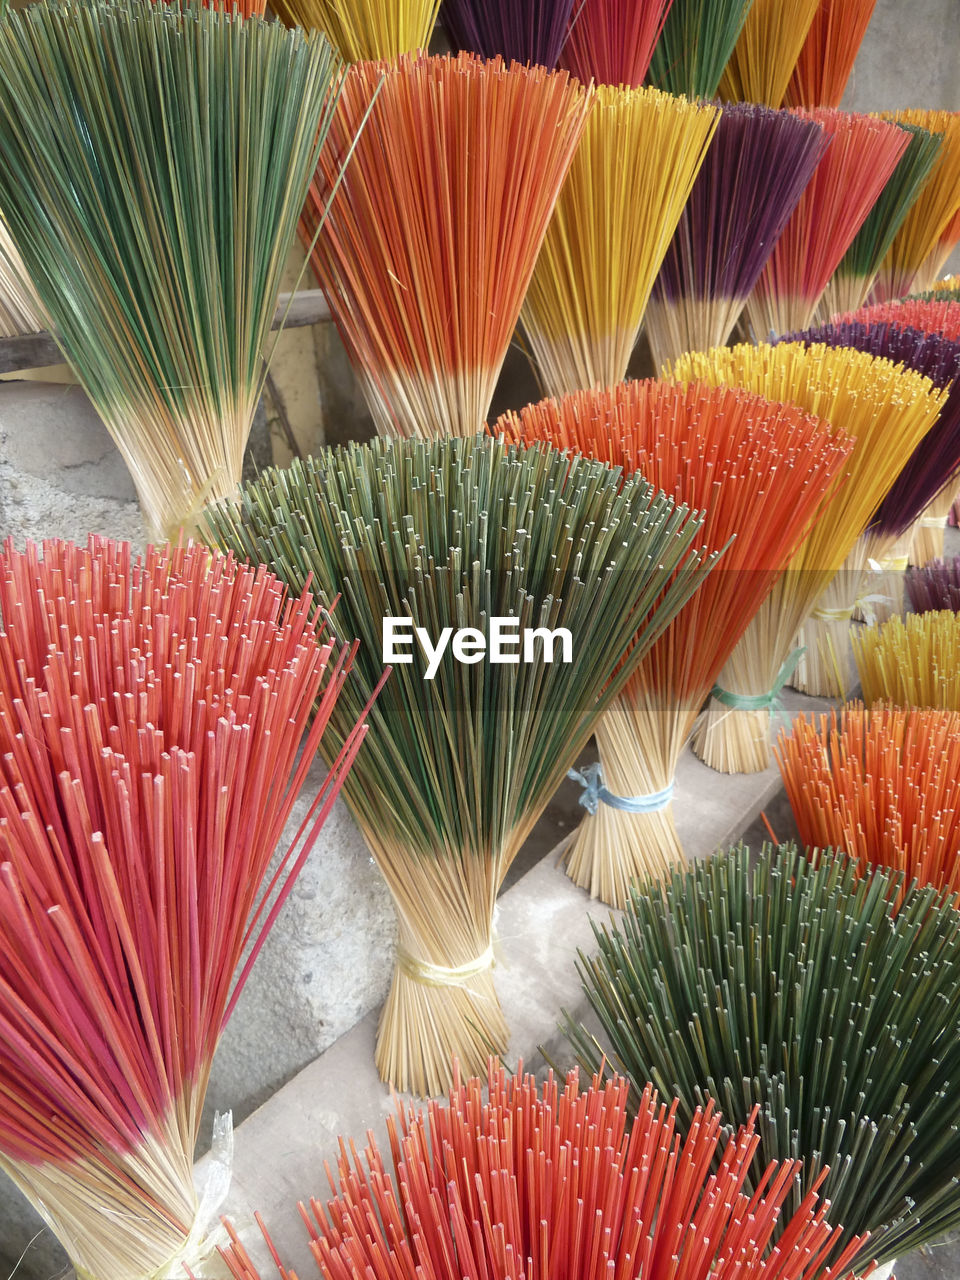 Close-up of multi colored brooms for sale in market